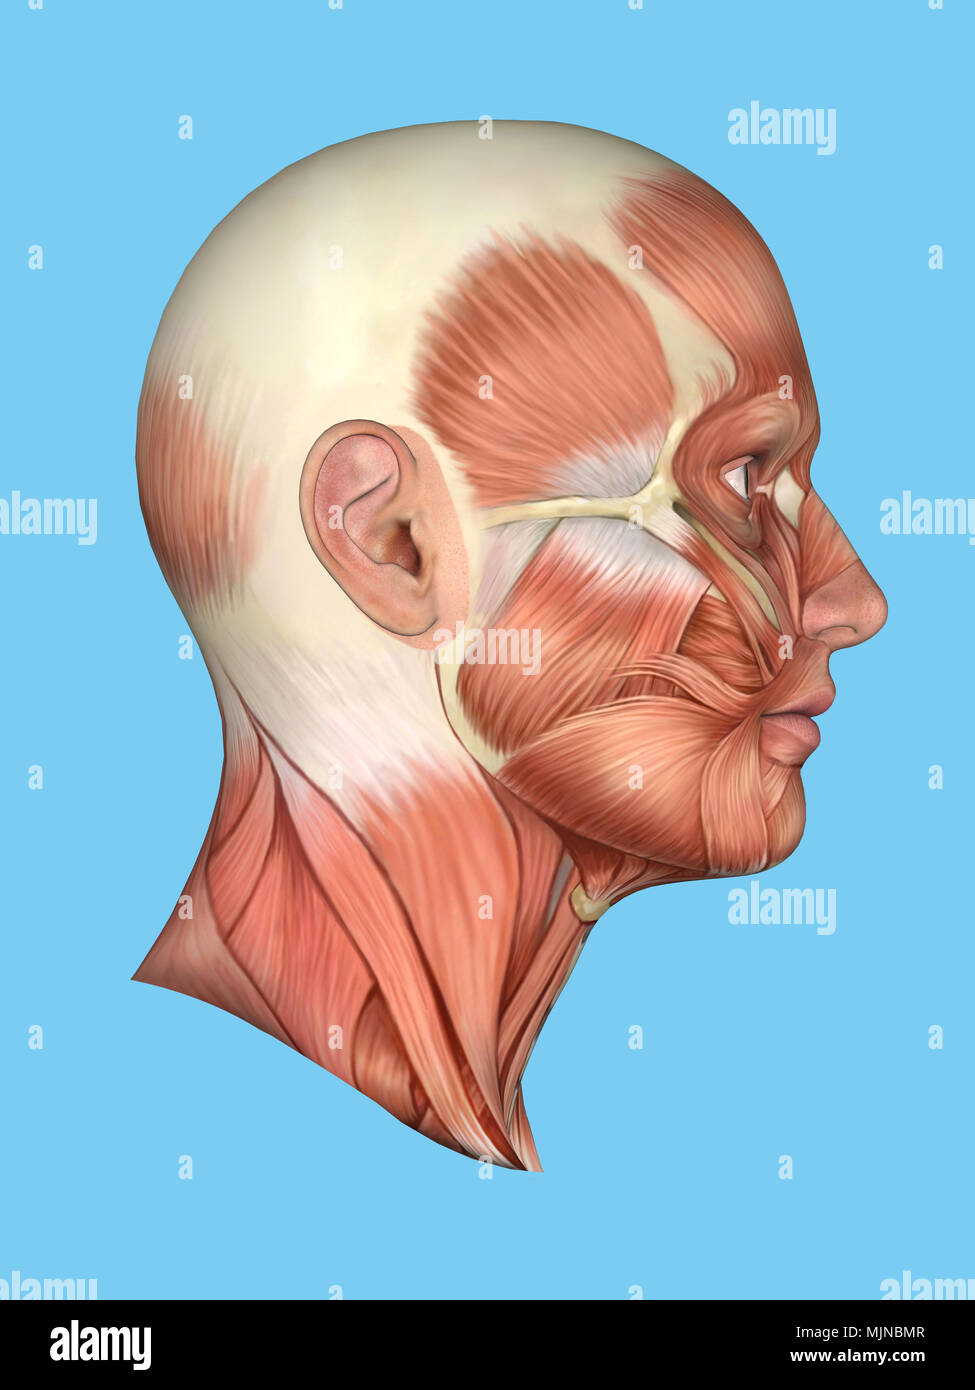 Anatomy Side View Of Face Stock Photo 183637687 Alamy